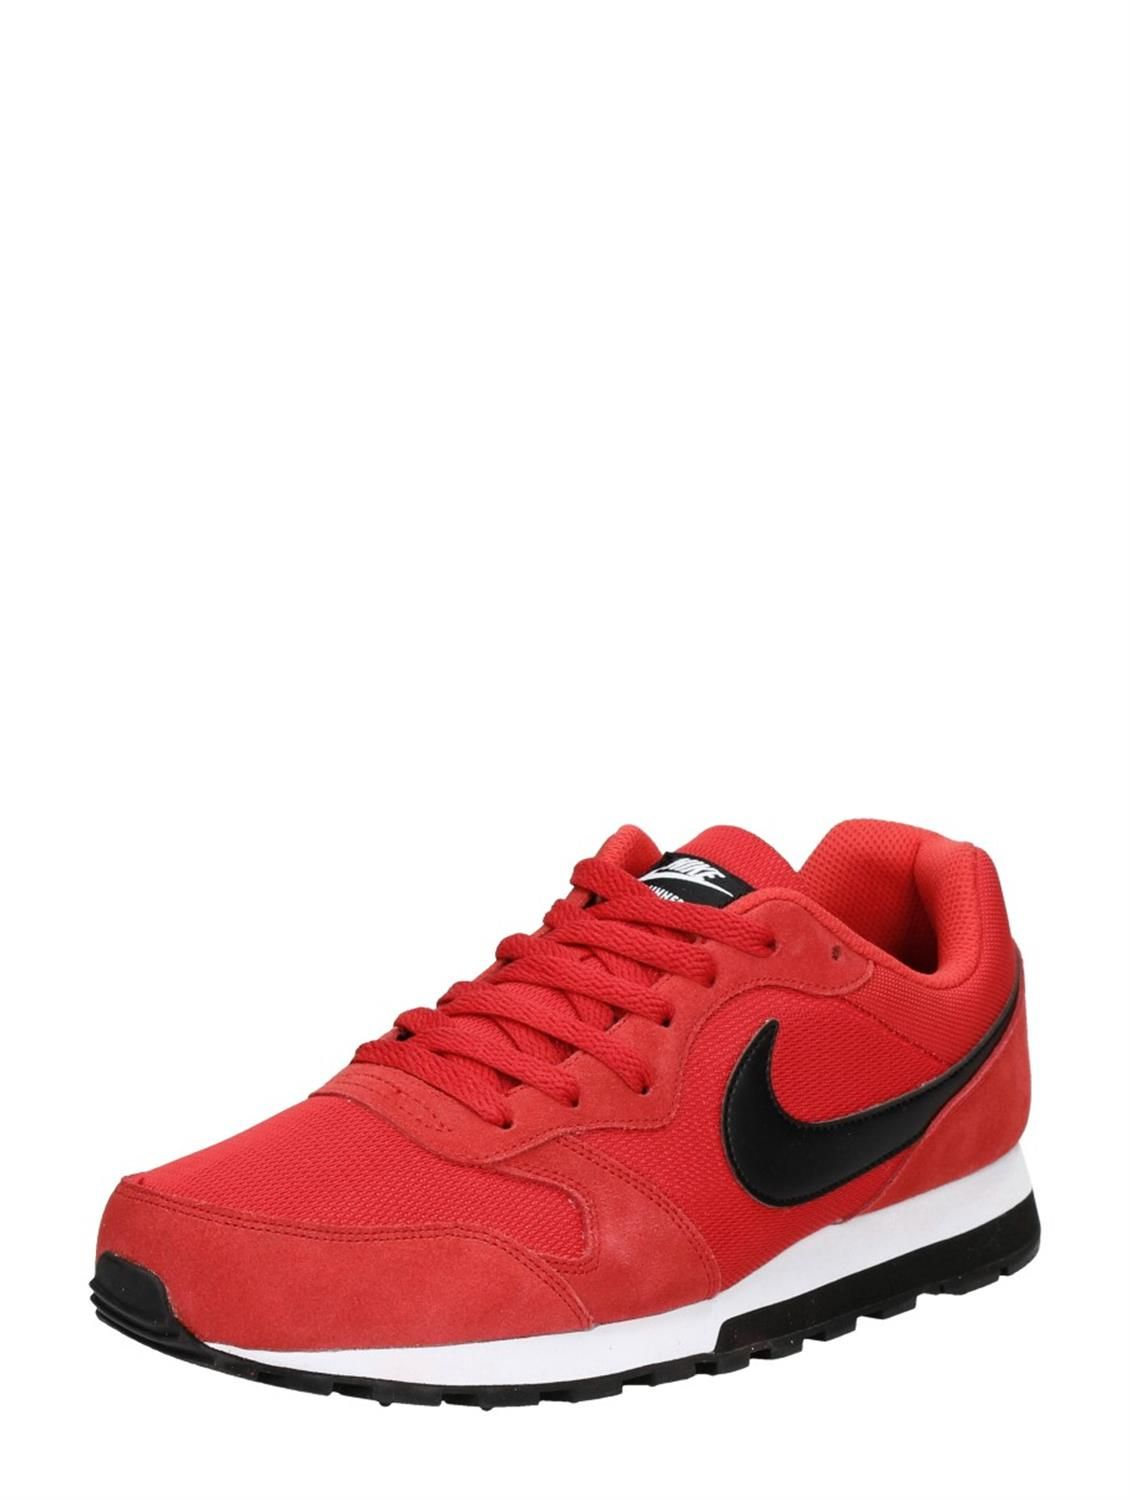 Nike MD Runner 2 heren sneakers rood | Herensneakers